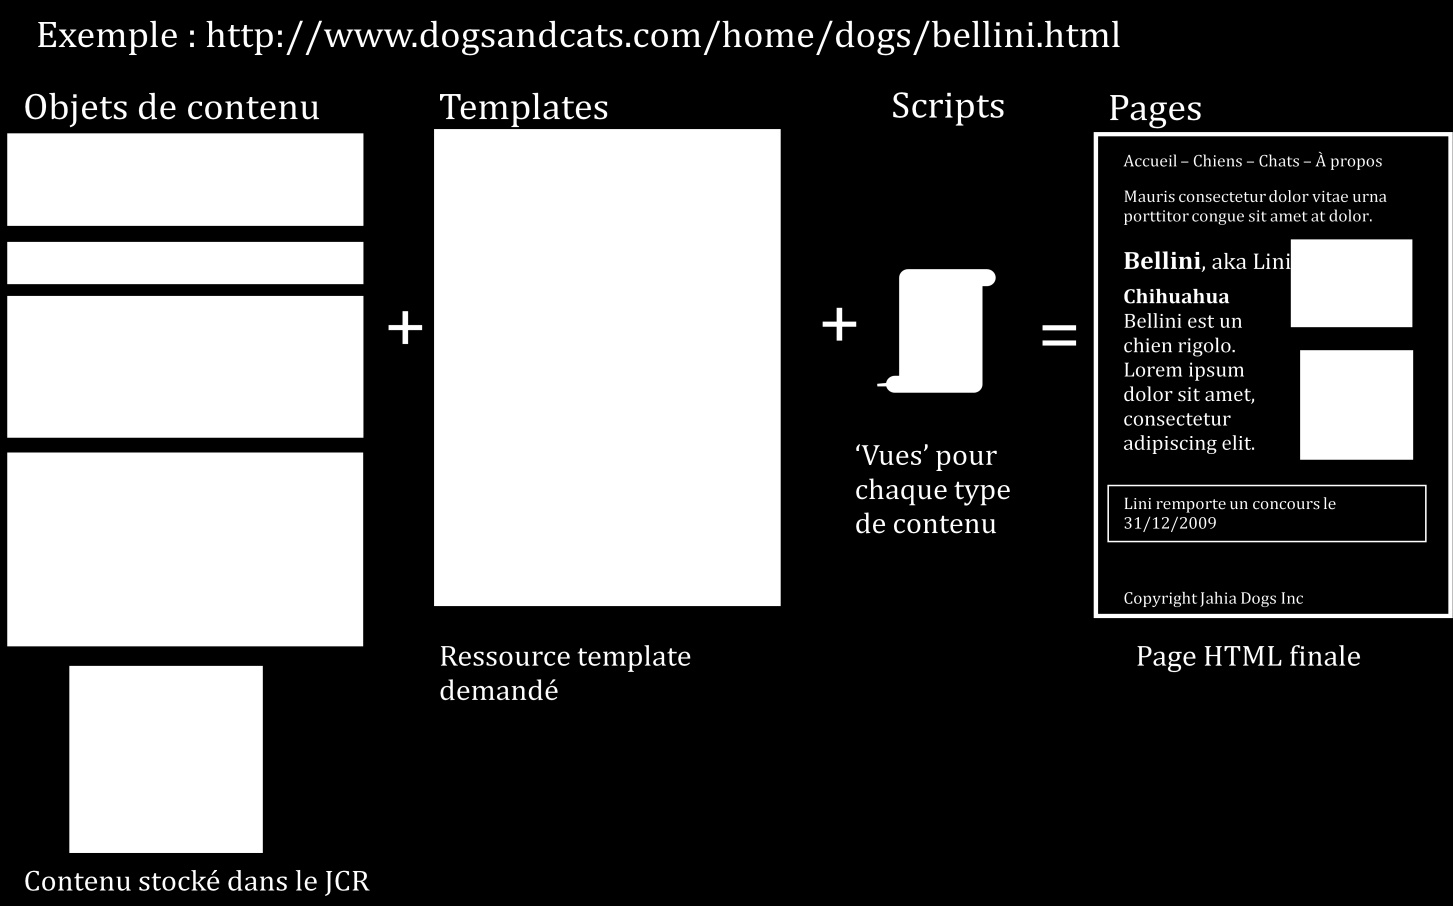 Exemple : http://www.dogsandcats.com/home/dogs/bellini.